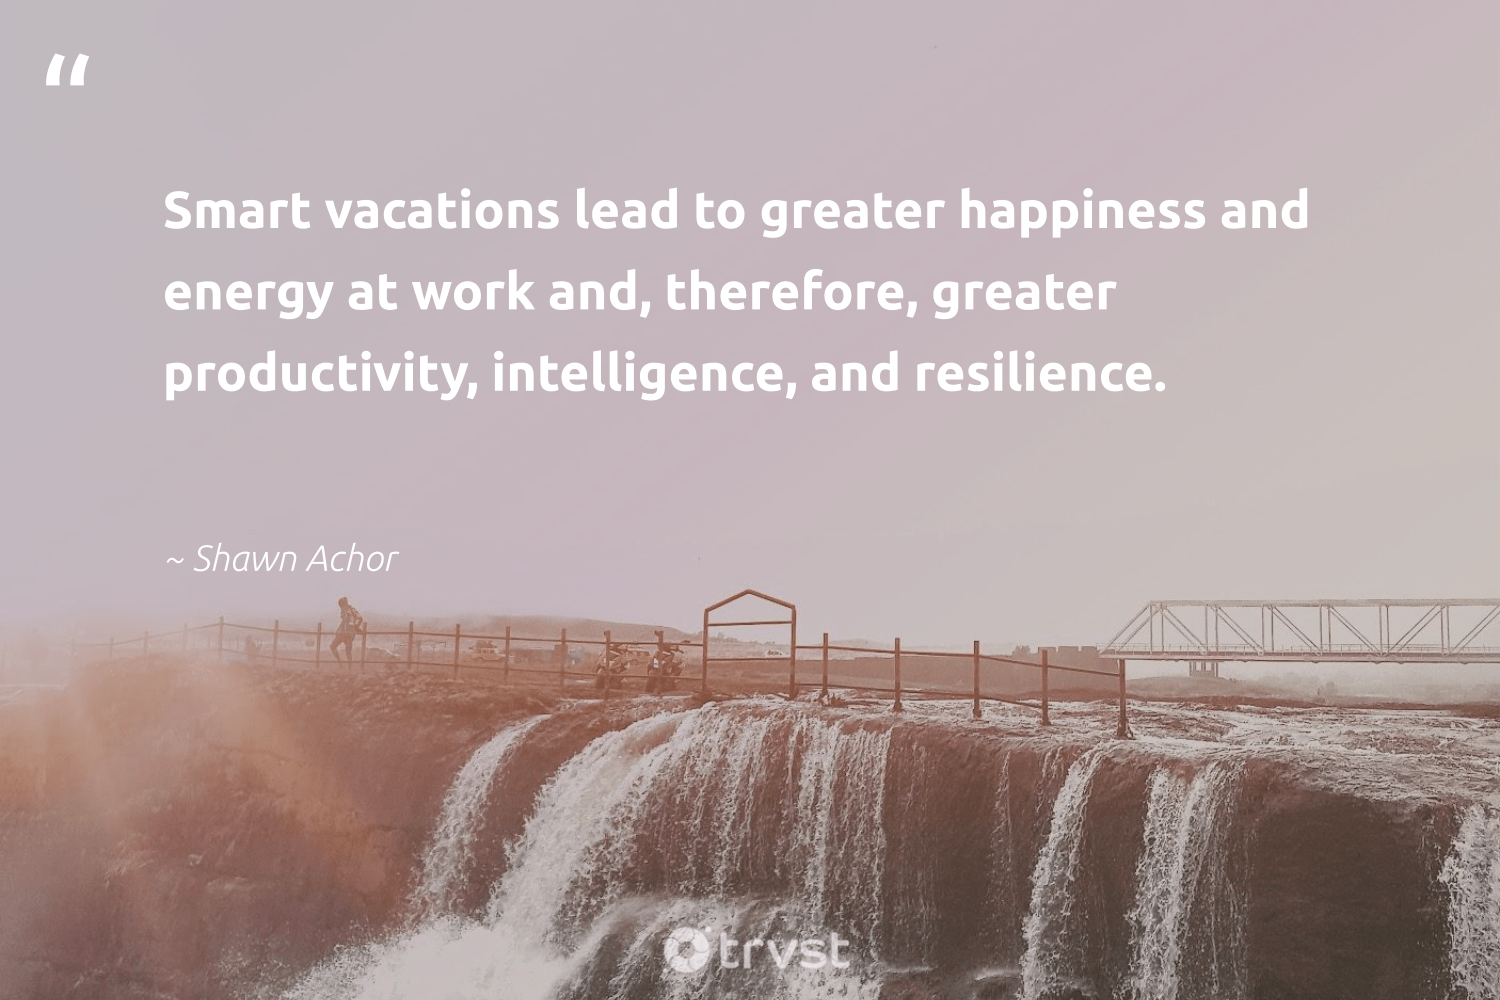 """""""Smart vacations lead to greater happiness and energy at work and, therefore, greater productivity, intelligence, and resilience.""""  - Shawn Achor #trvst #quotes #productivity #energy #happiness #mostwontiwill #softskills #begreat #takeaction #motivational #nevergiveup #futureofwork"""